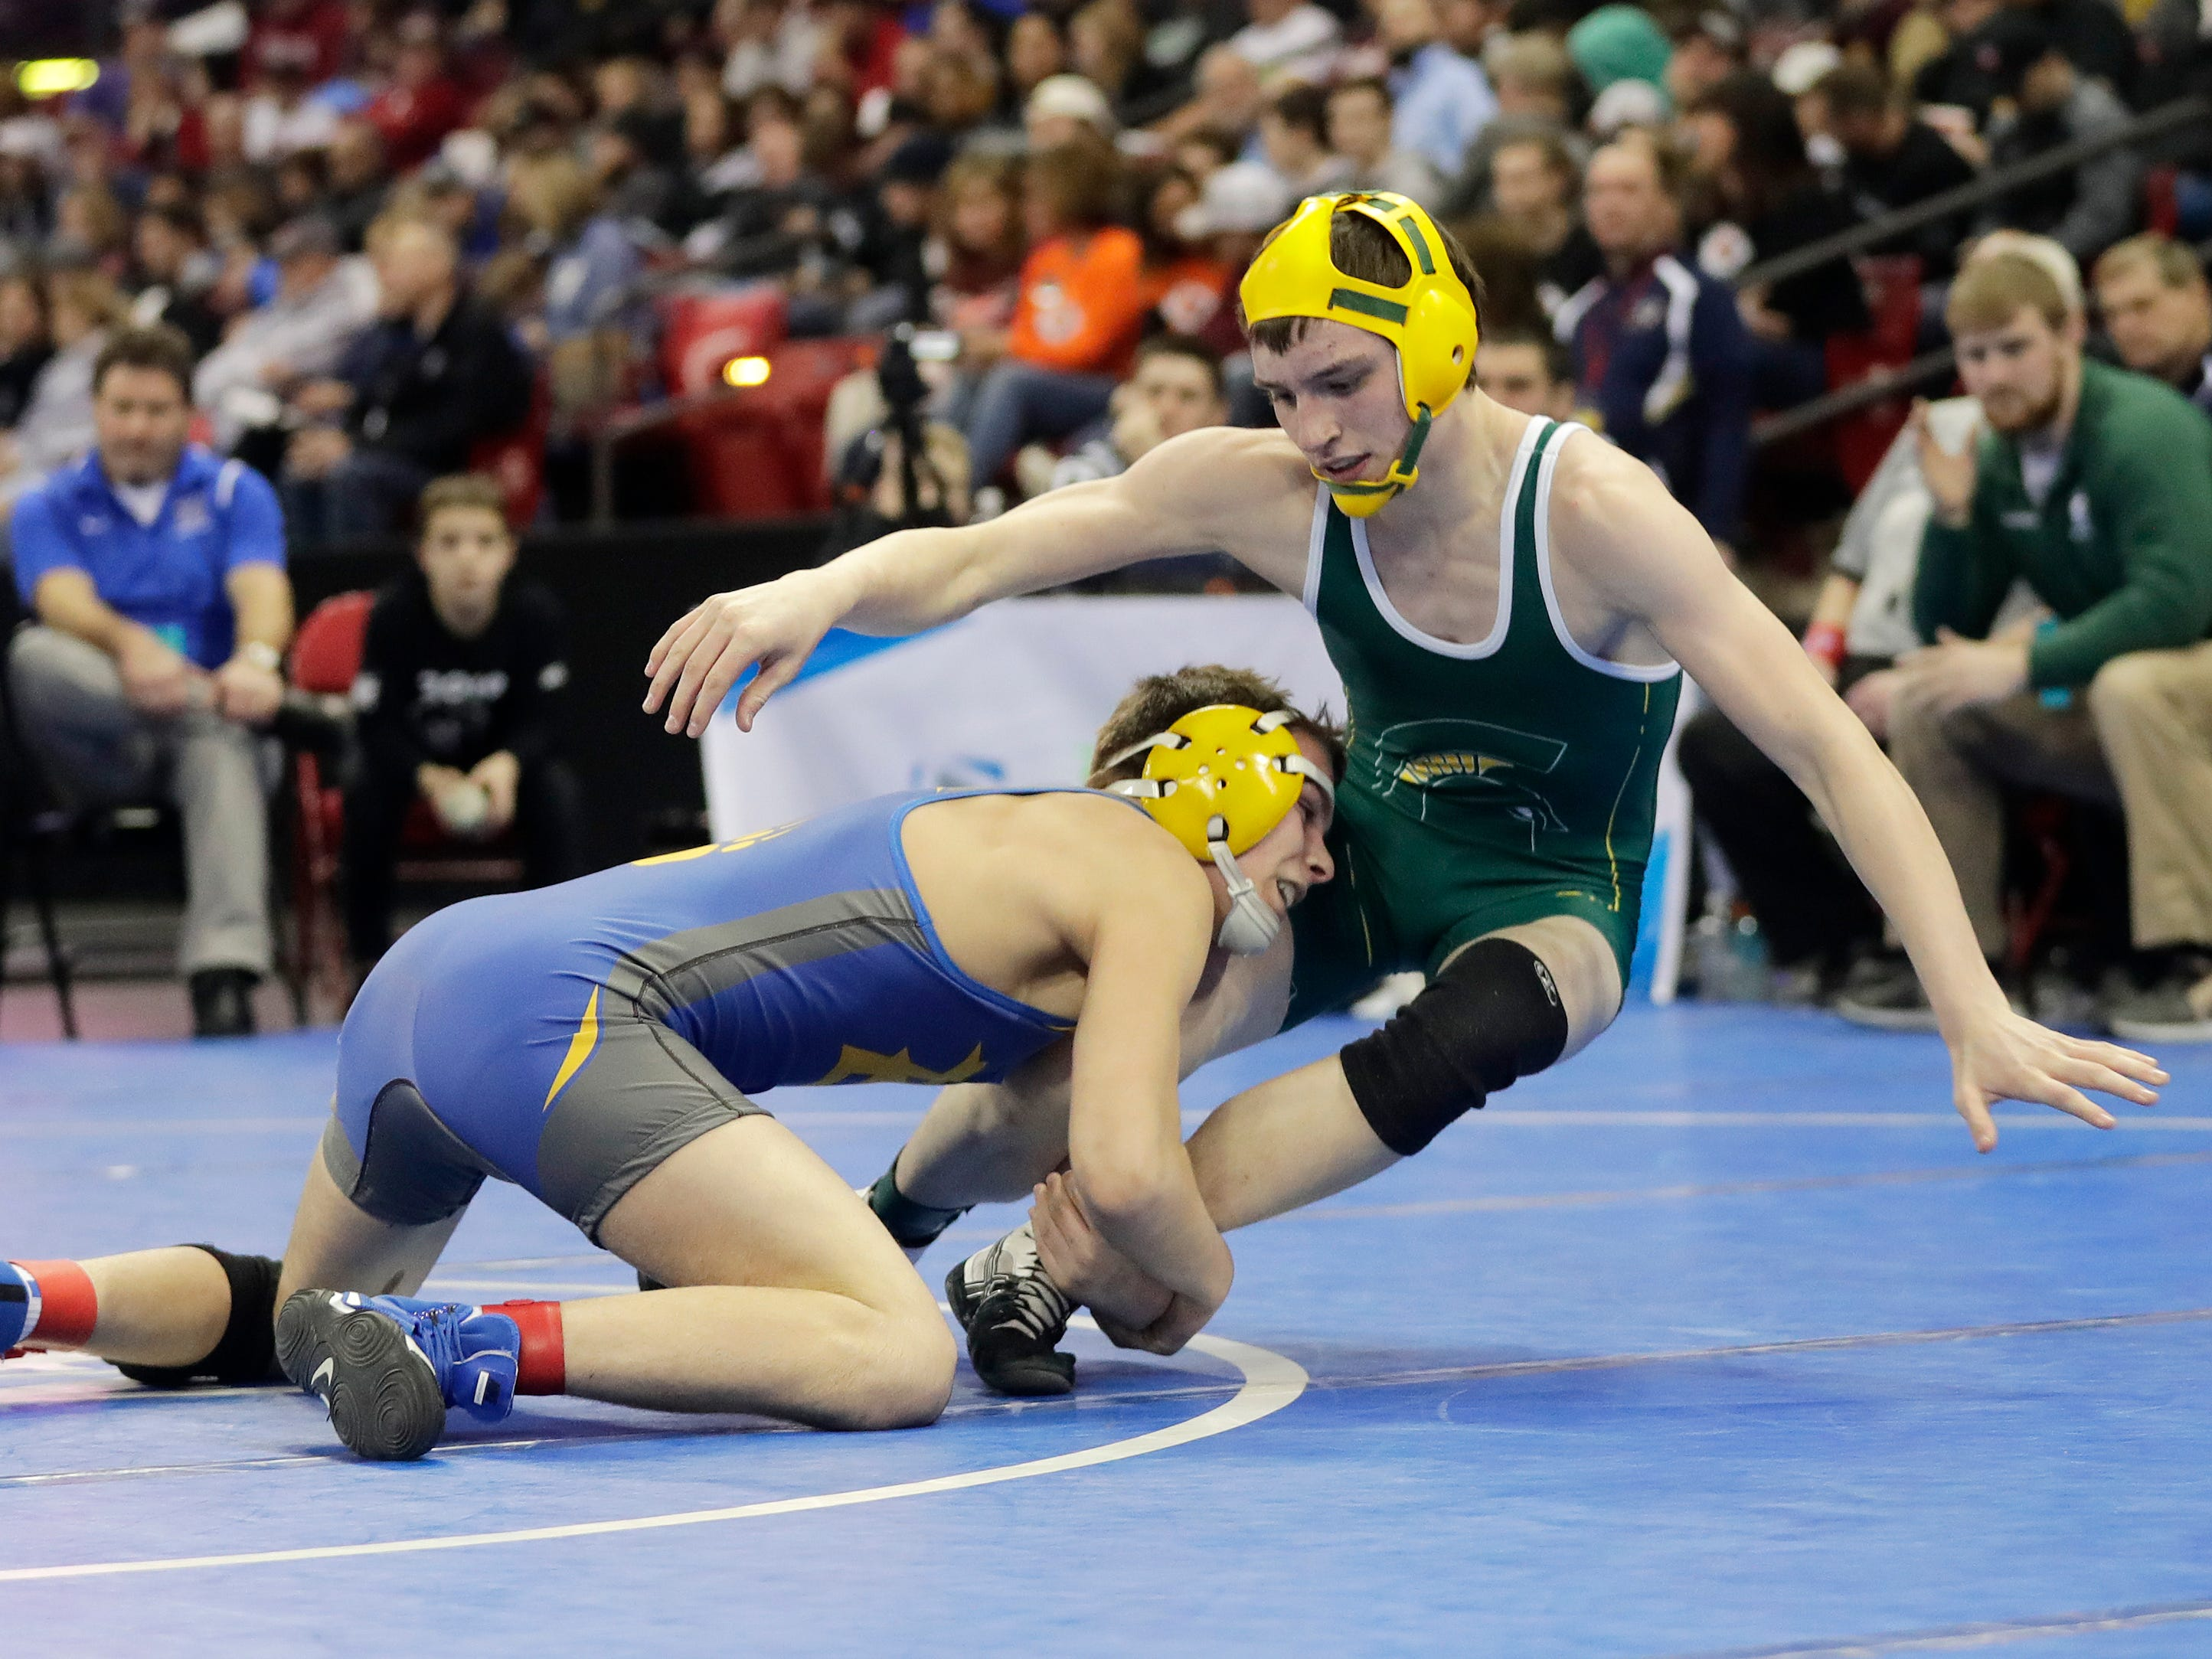 Bonduel's Max Sokolski wrestles Laconia's Colton Lovejoy in a Division 3 126-pound preliminary match at the WIAA state individual wrestling tournament at the Kohl Center on Thursday, February 21, 2019 in Madison, Wis.